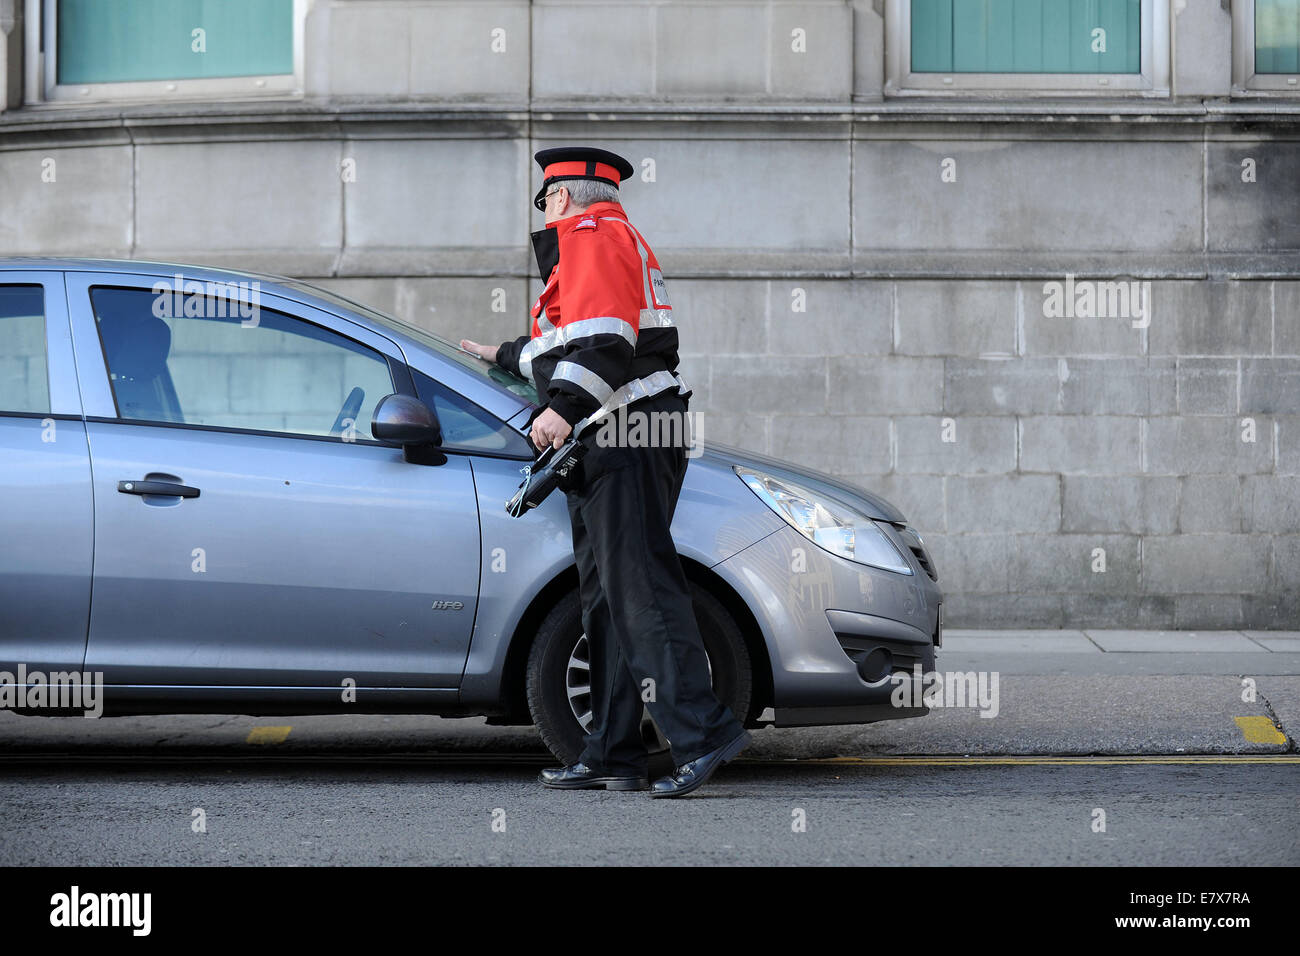 A traffic warden (civil enforcement officer) on patrol issuing parking tickets to illegally parked cars in Cardiff, - Stock Image